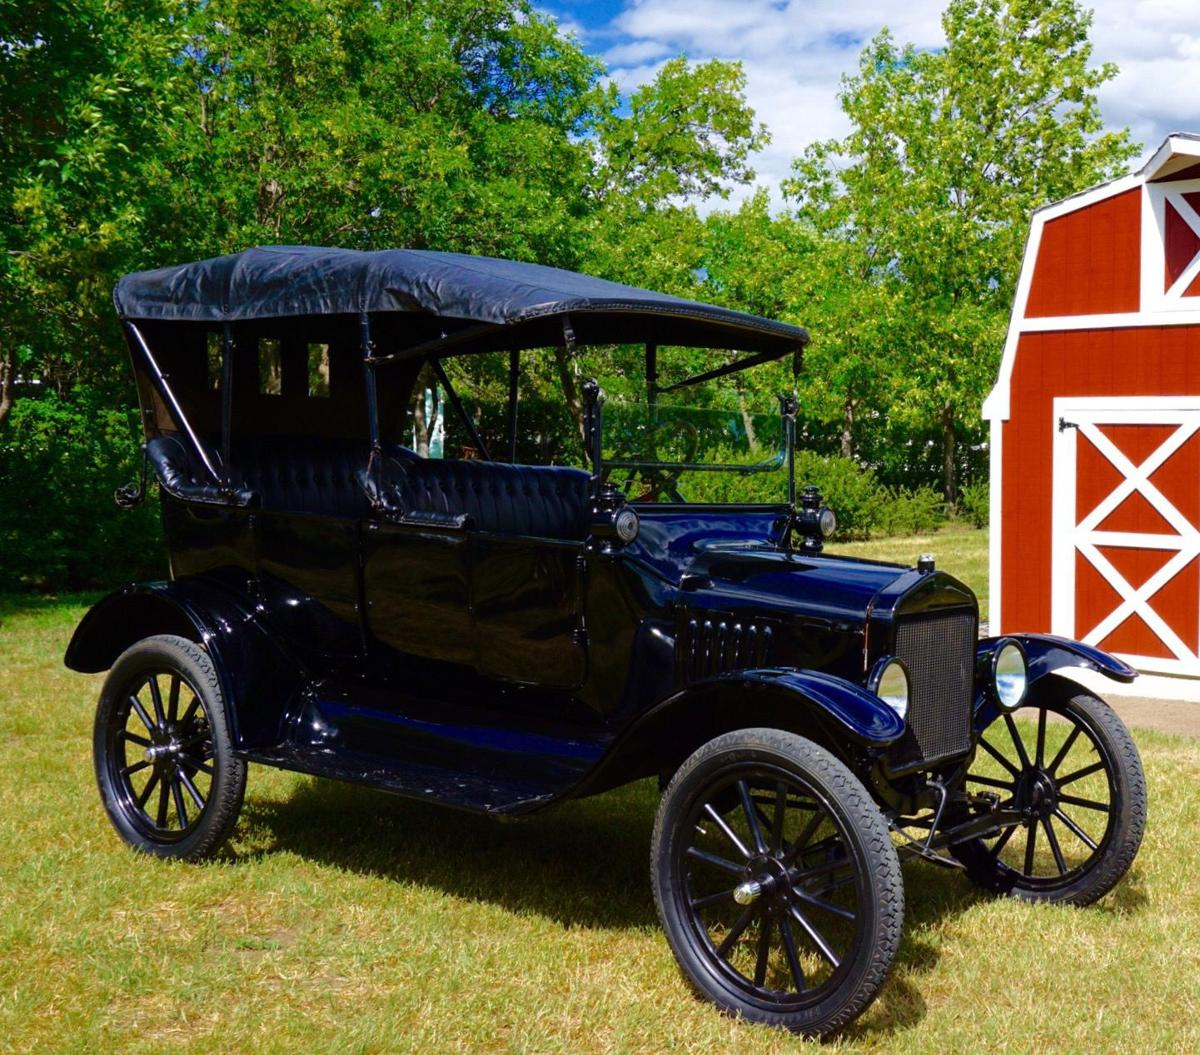 Century-old 'Tin Lizzie' to be showcased at Buggies-n-Blues ...